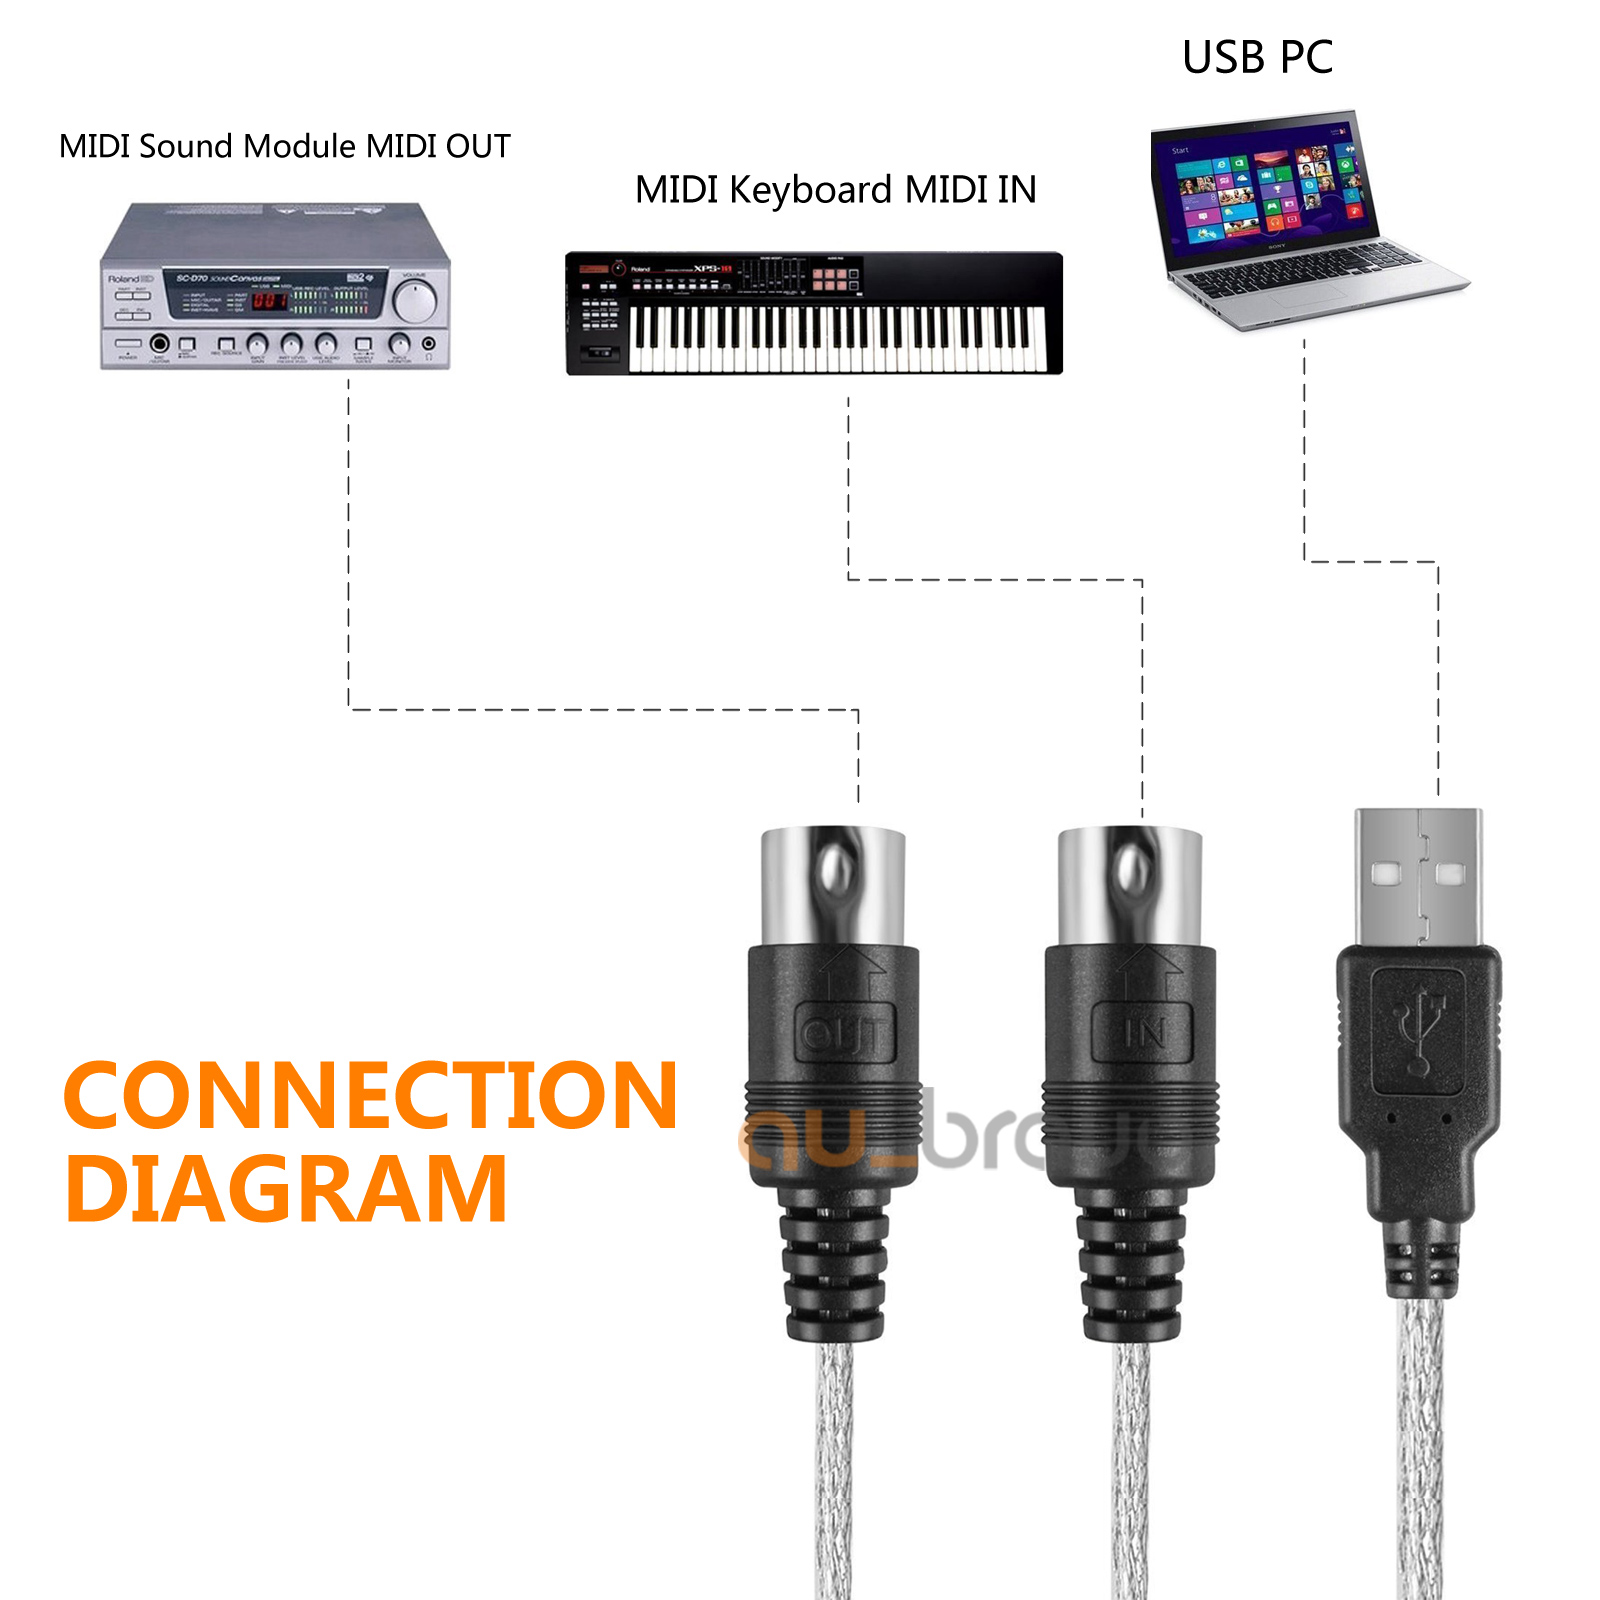 New Midi To Usb Cable Interface Converter Pc In Music Keyboard Out Wiring Diagram T0 Adapter For Windows 7 8 10 Xp Vista Mac